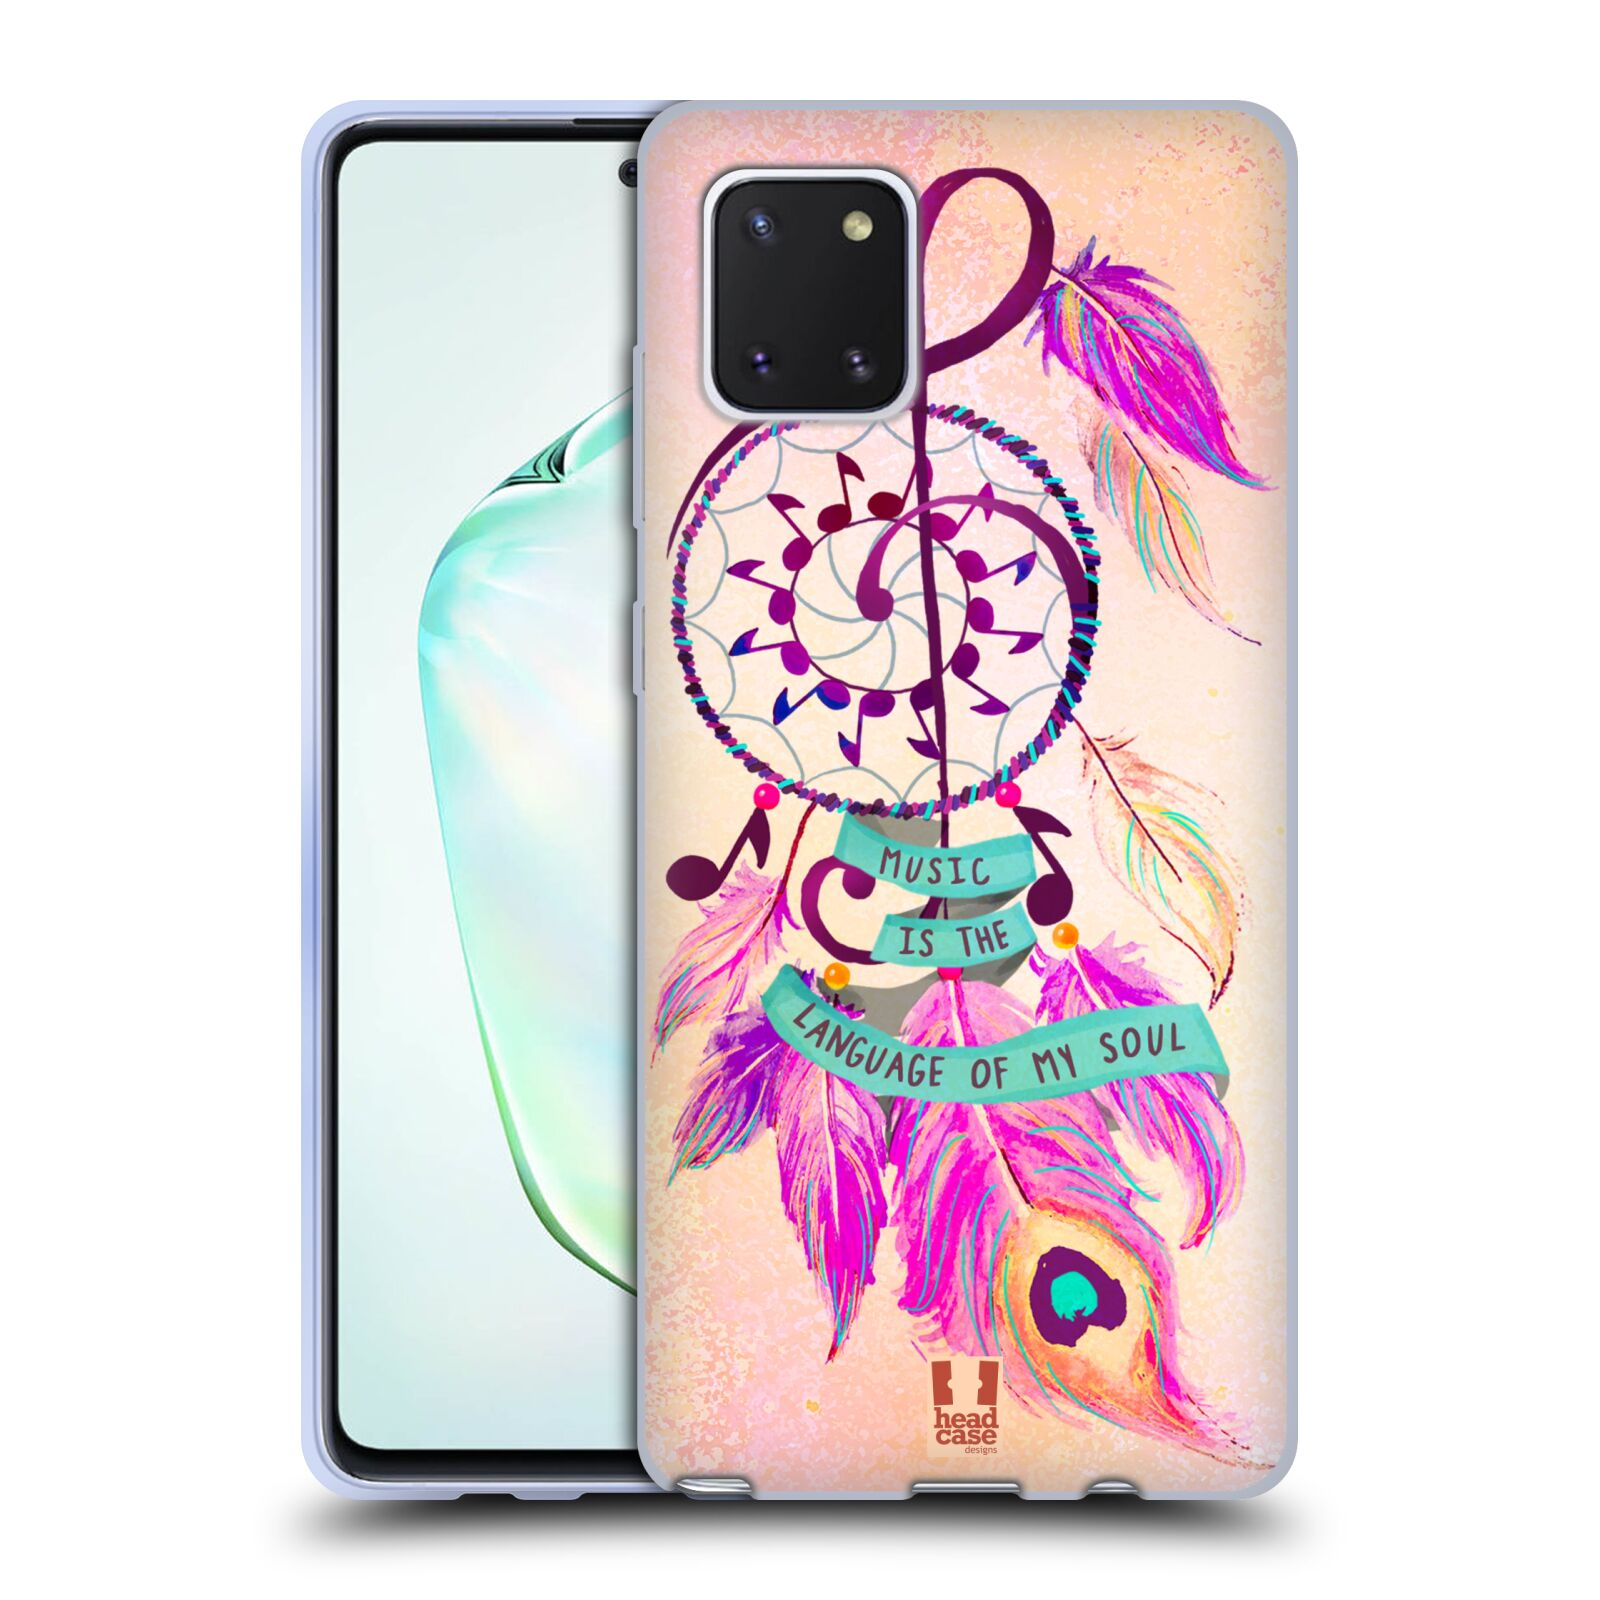 Silikonové pouzdro na mobil Samsung Galaxy Note 10 Lite - Head Case - Lapač Assorted Music